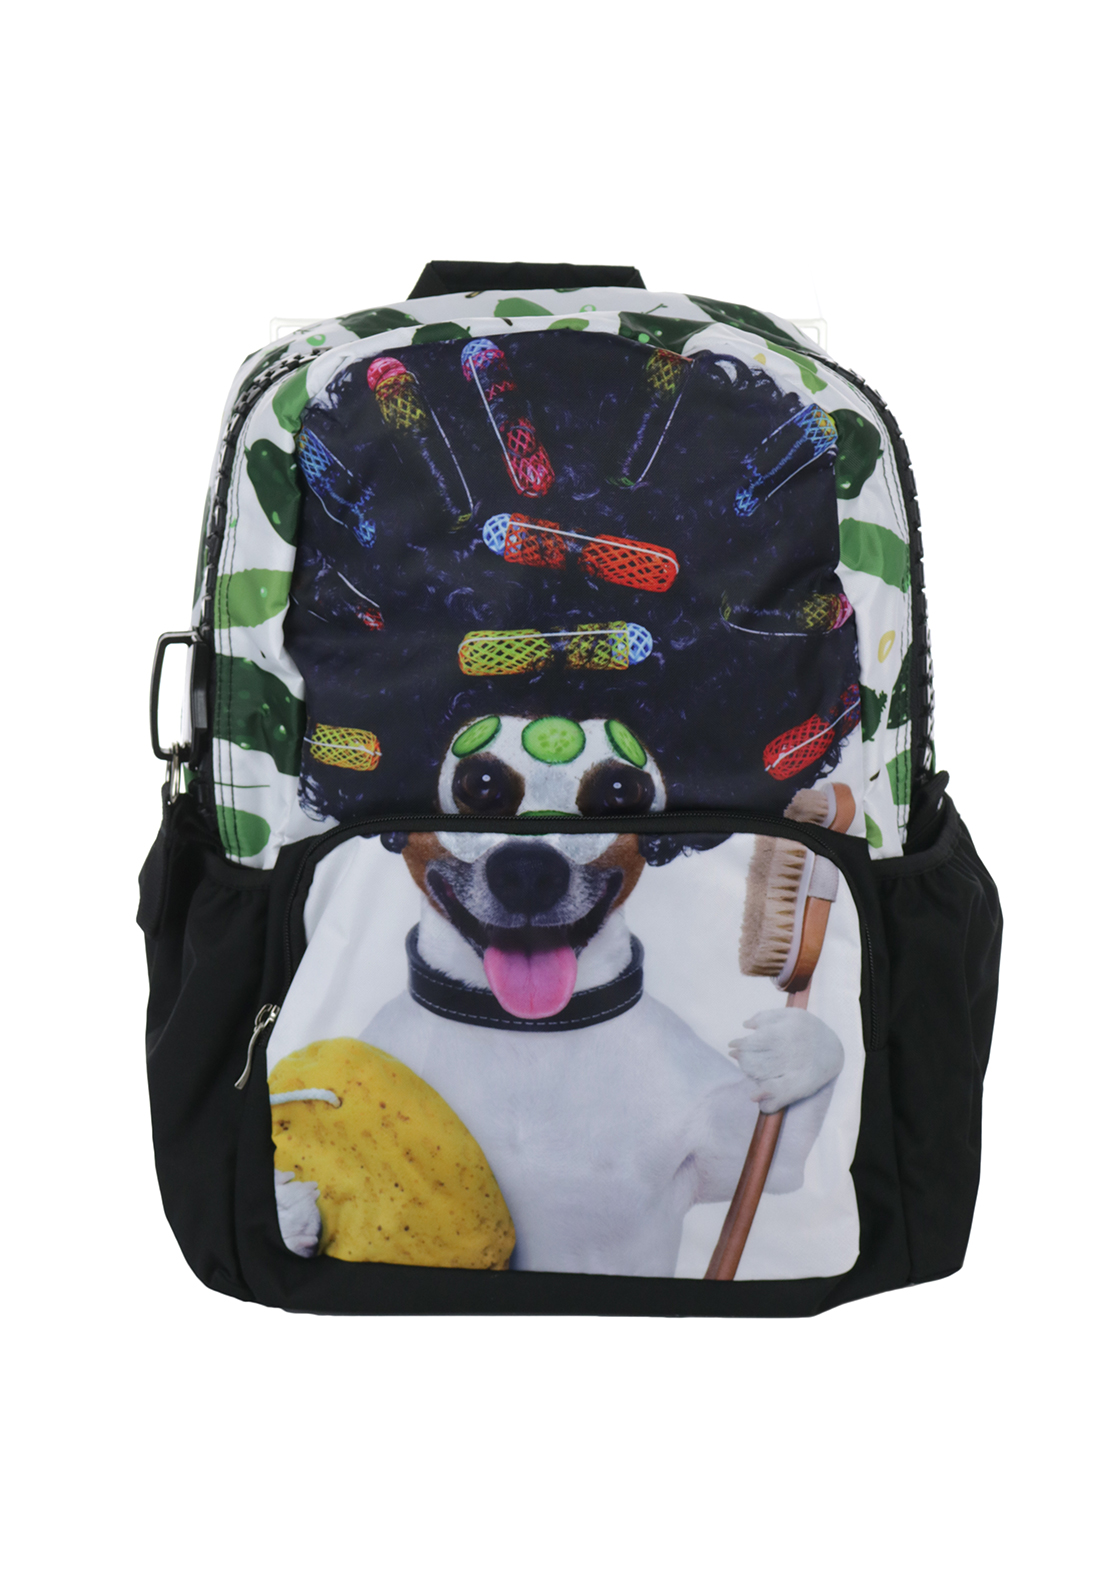 Ridge 53 Dog with Rollers Backpack Schoolbag, Multi-Coloured